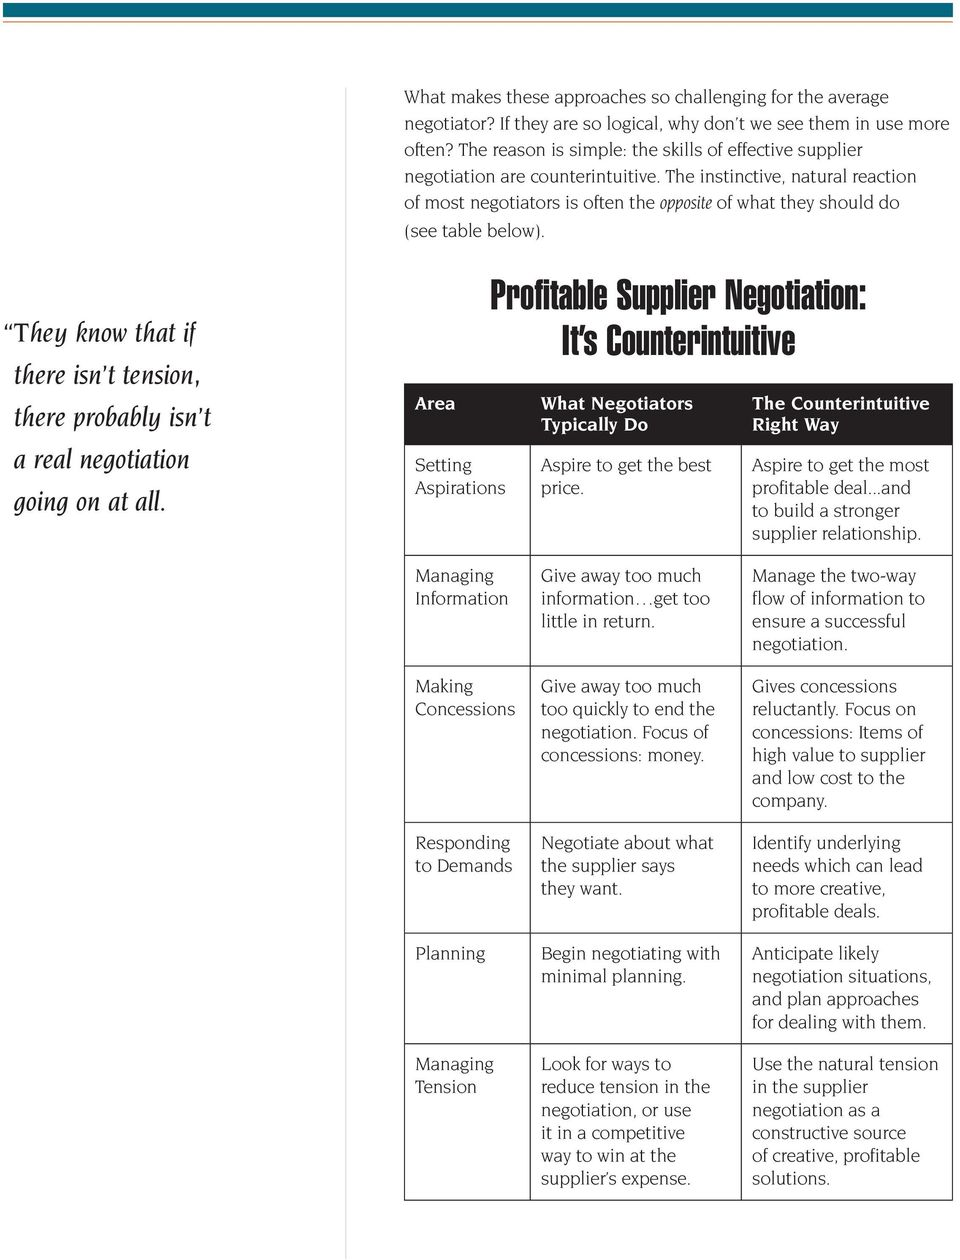 The instinctive, natural reaction of most negotiators is often the opposite of what they should do (see table below).